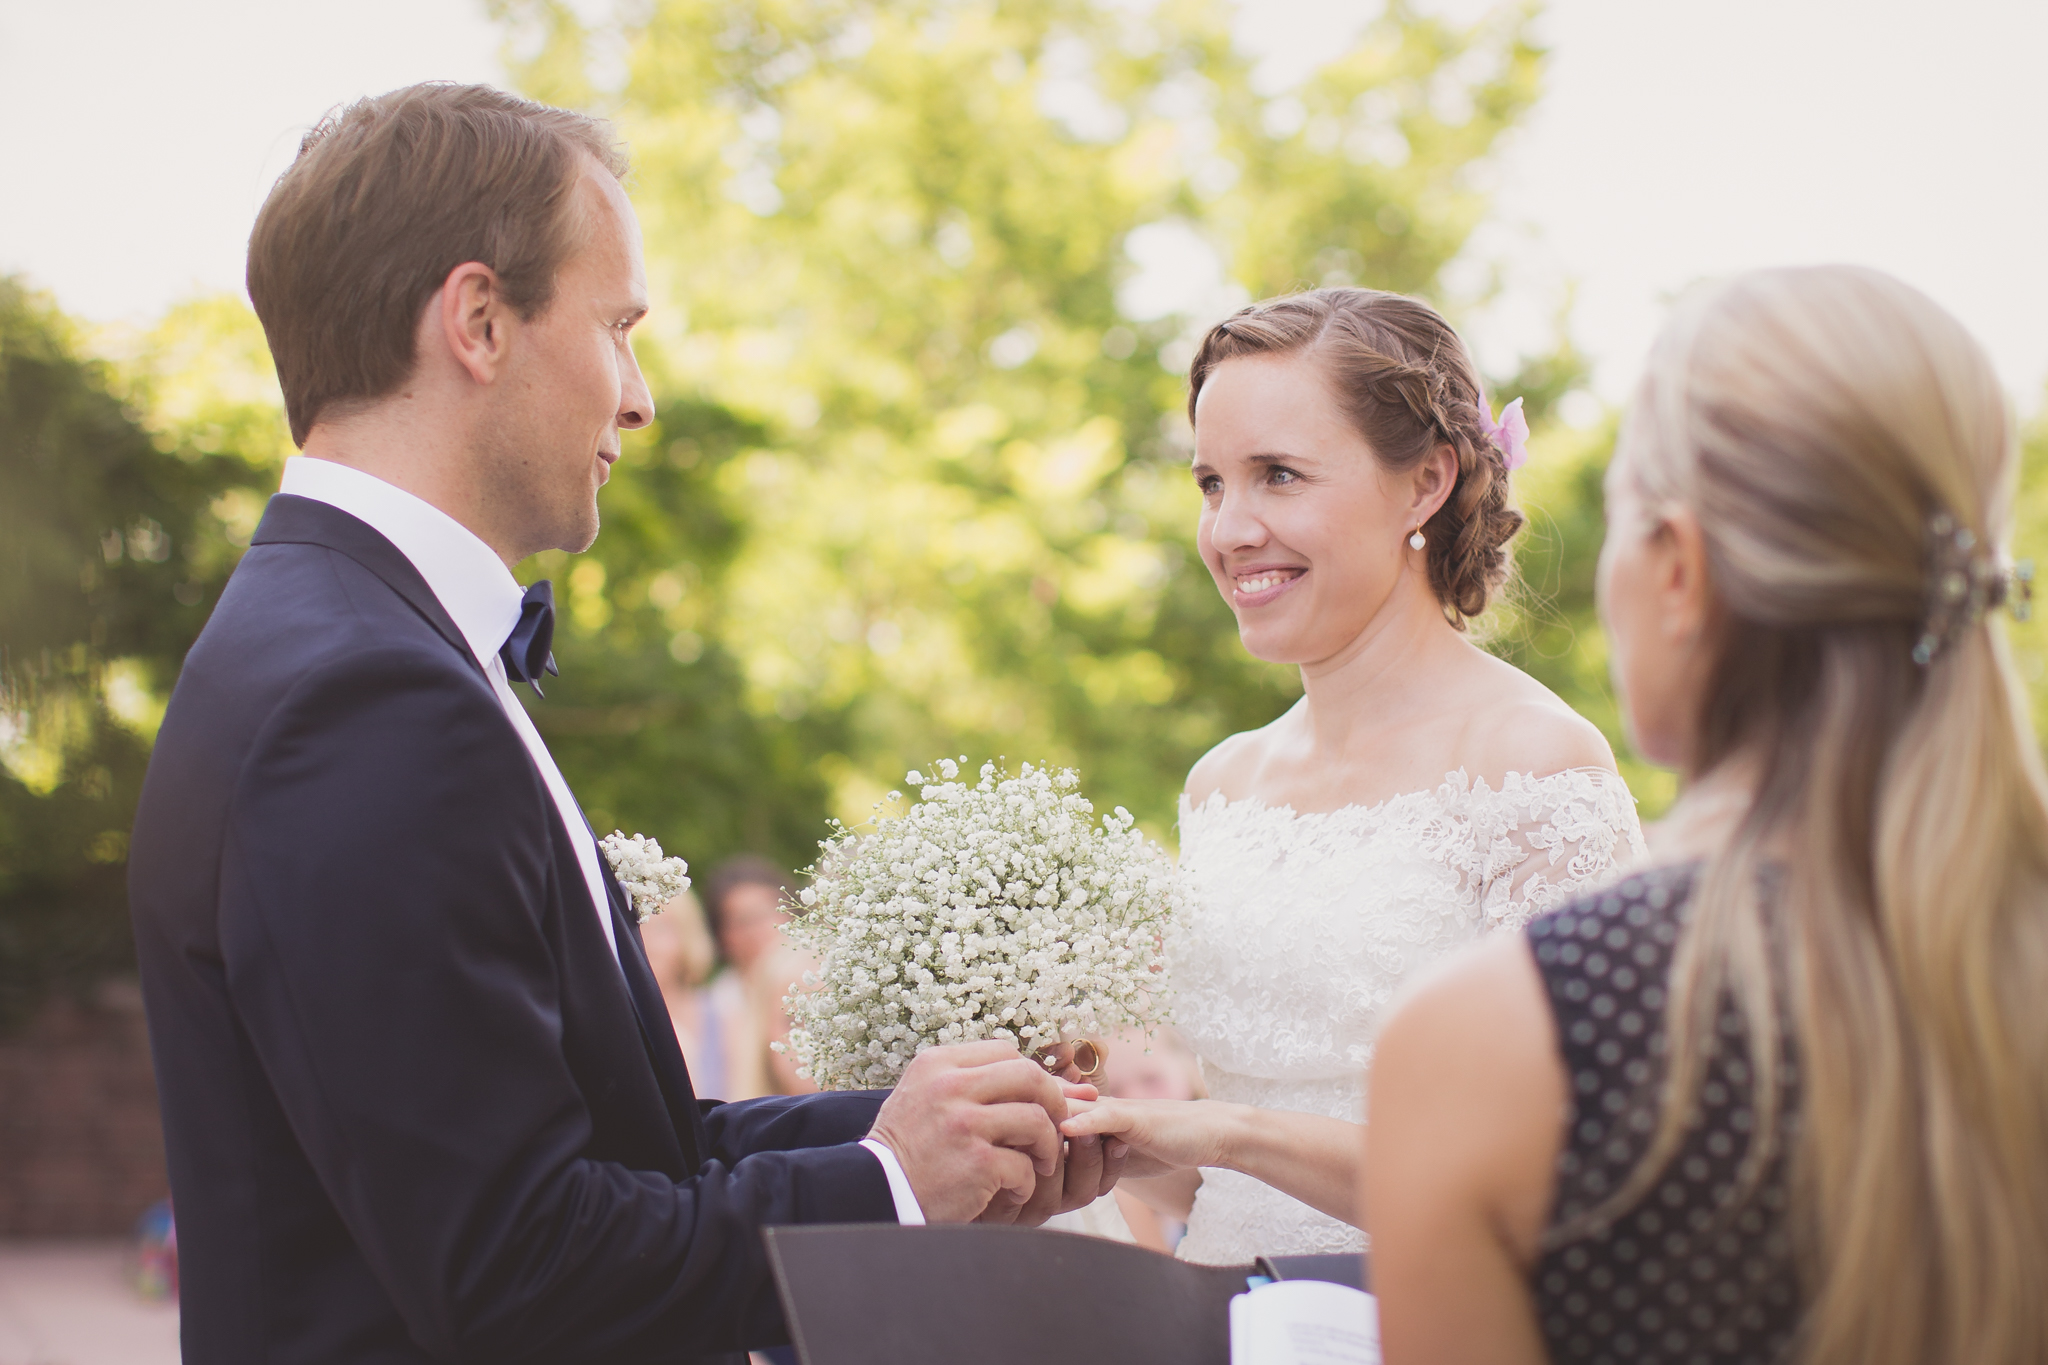 Cathrine+Andreas_Bryllup-67